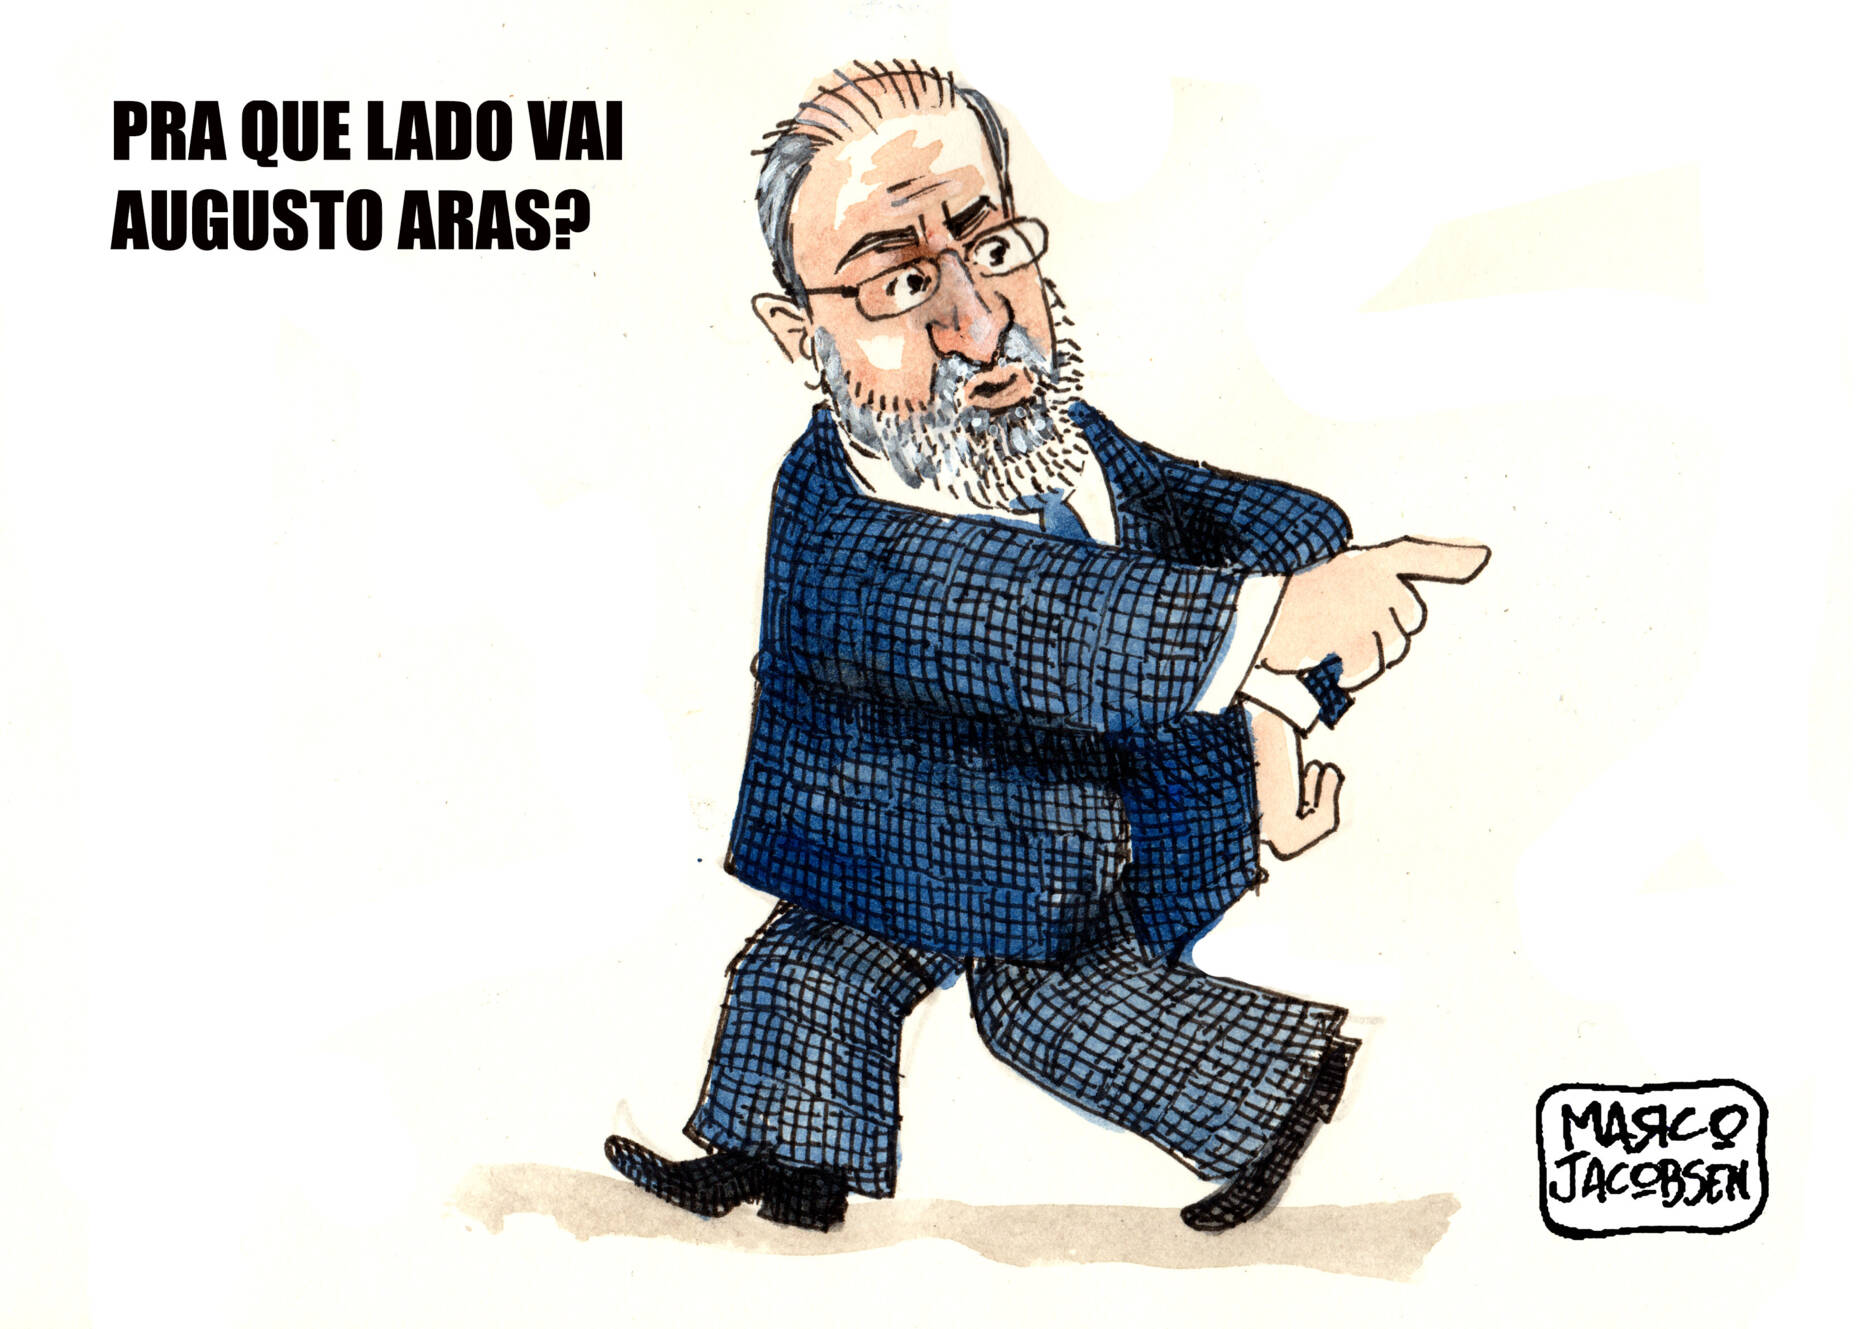 Charge 30/05/2020